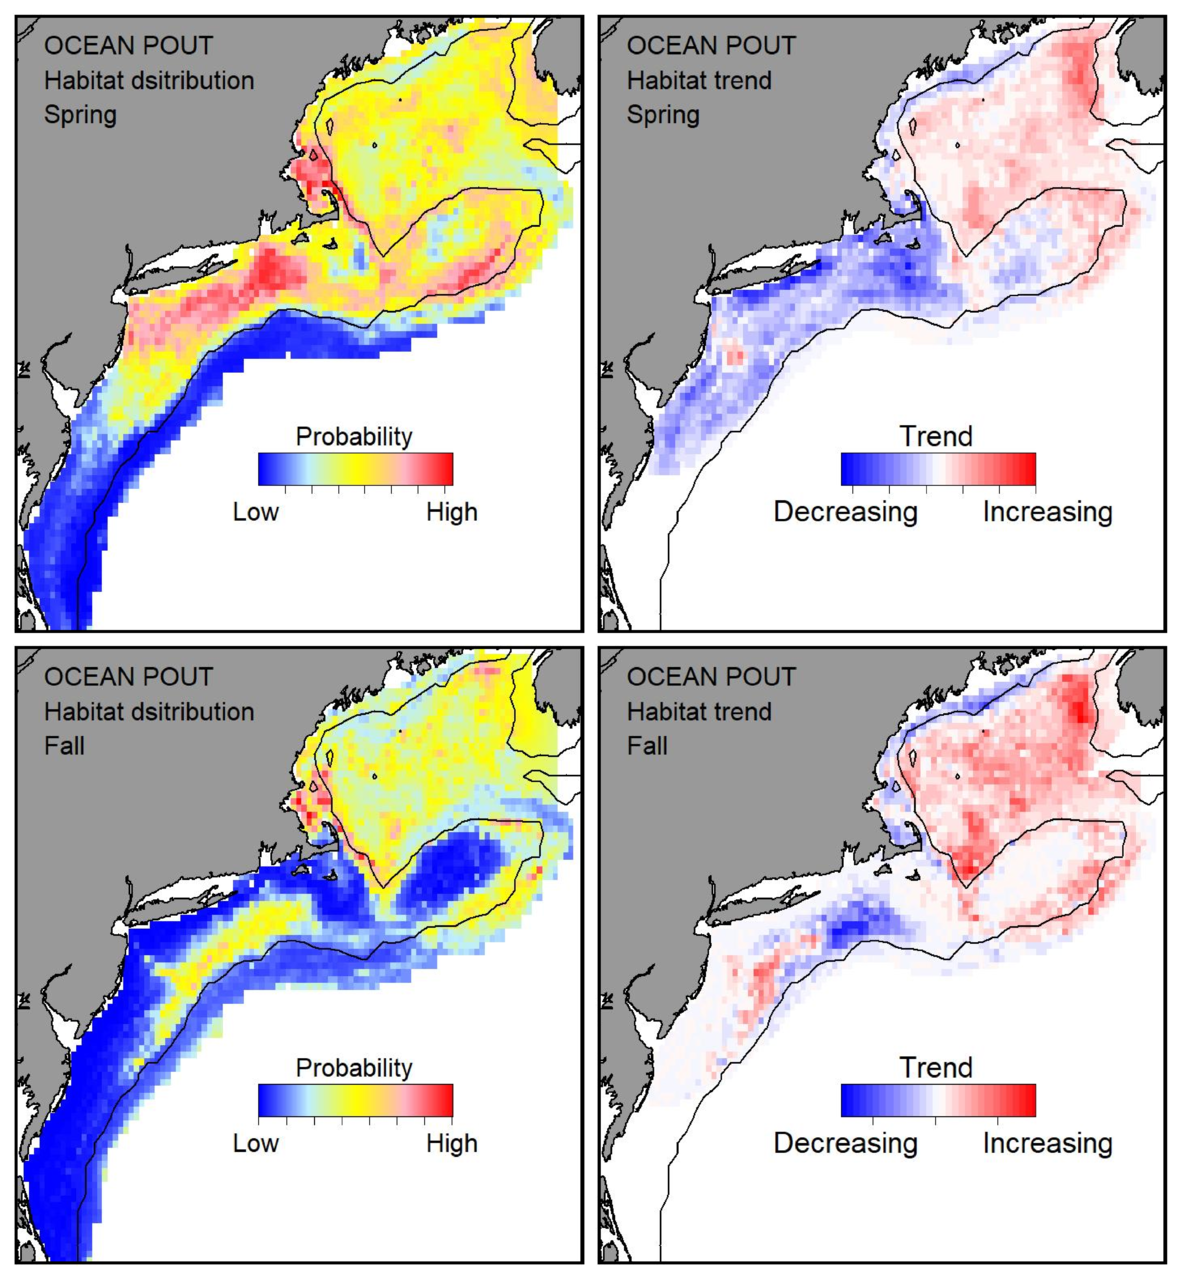 Probable habitat distribution for ocean pout showing the highest concentration and increasing trend in the Gulf of Maine during the spring. Bottom row: Probable habitat distribution for ocean pout showing the highest concentration and increasing trend in the Gulf of Maine during the fall.